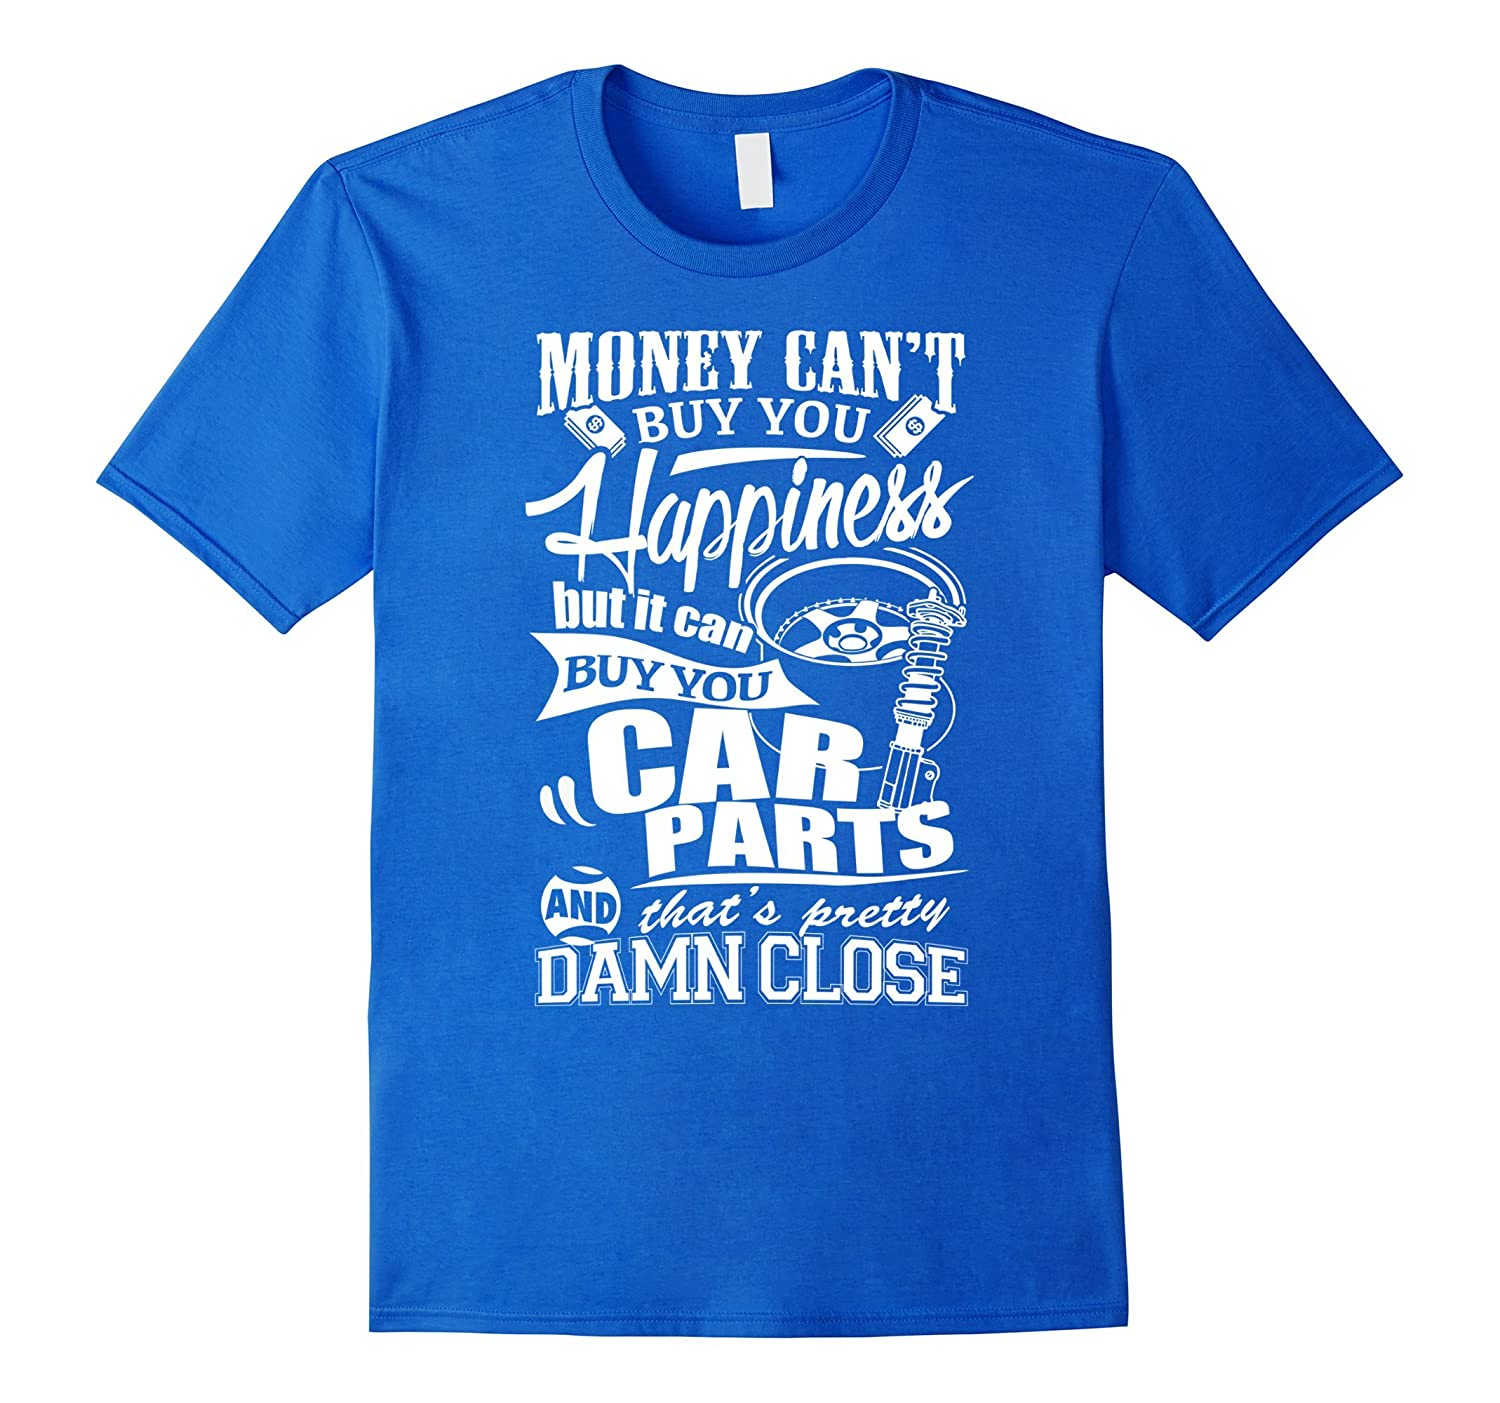 Money Can't Buy You Happiness But Can Buy Car Parts T Shirt-CL